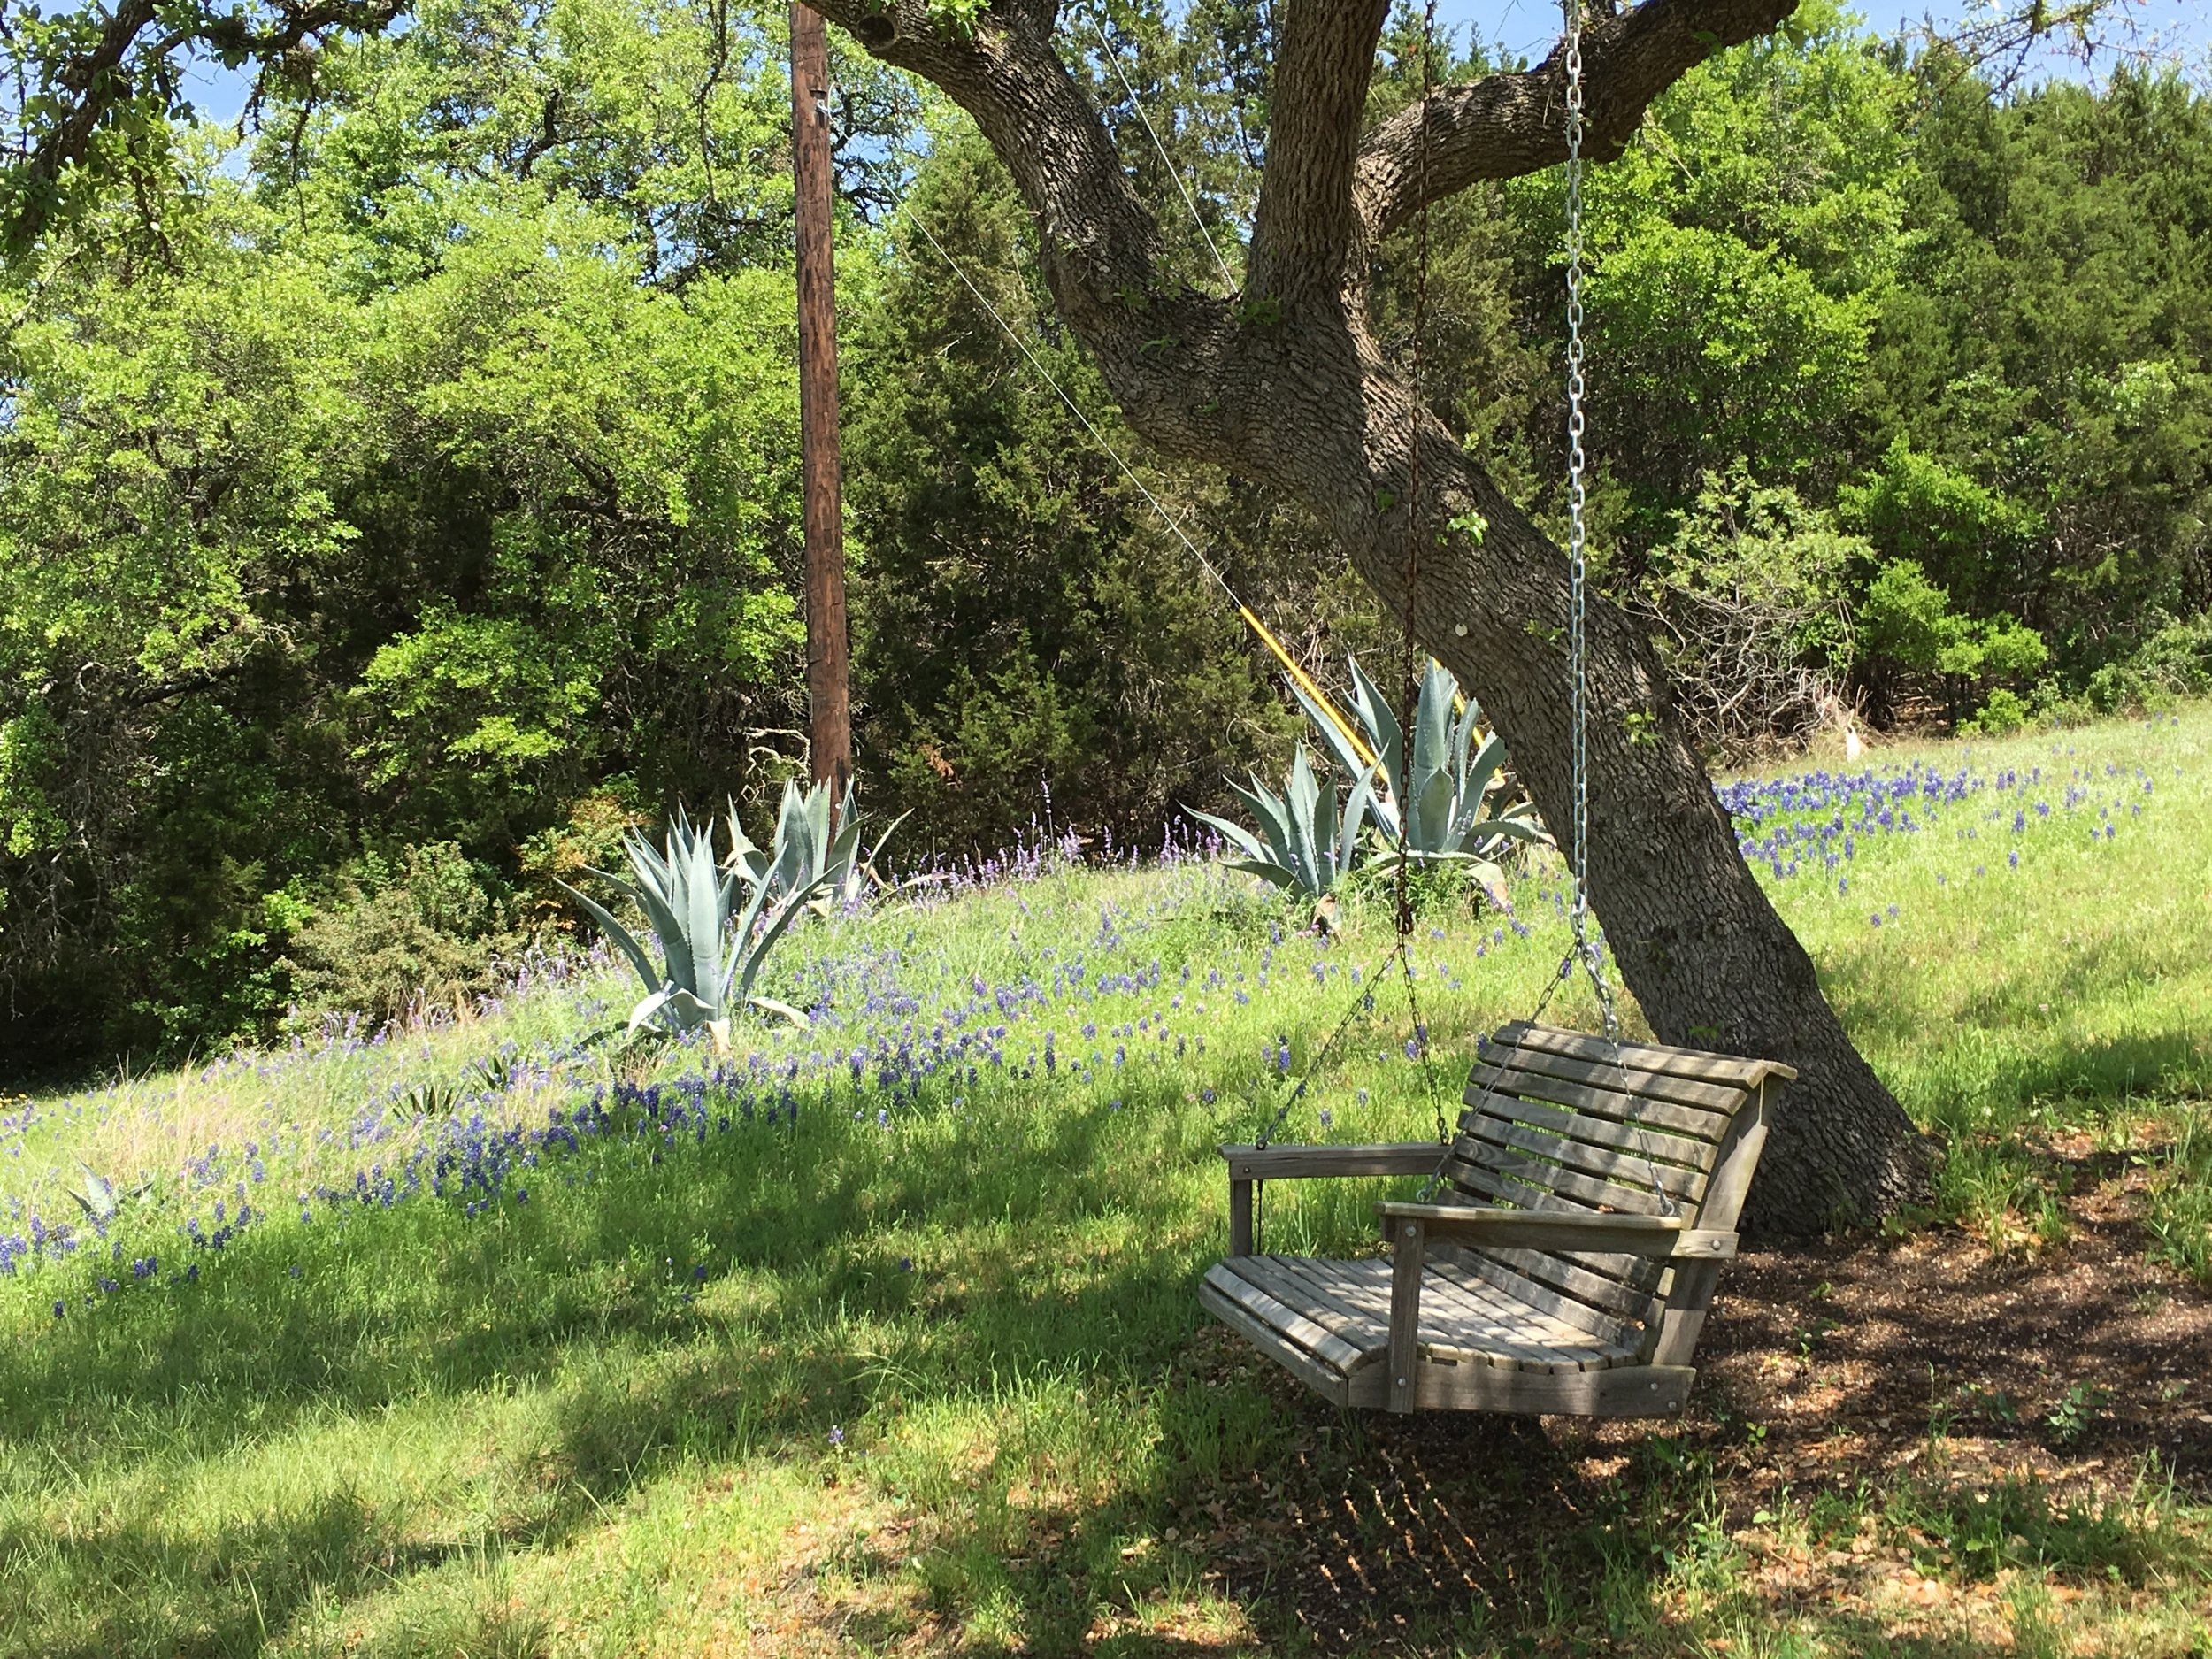 Bluebonnet Swing.jpg